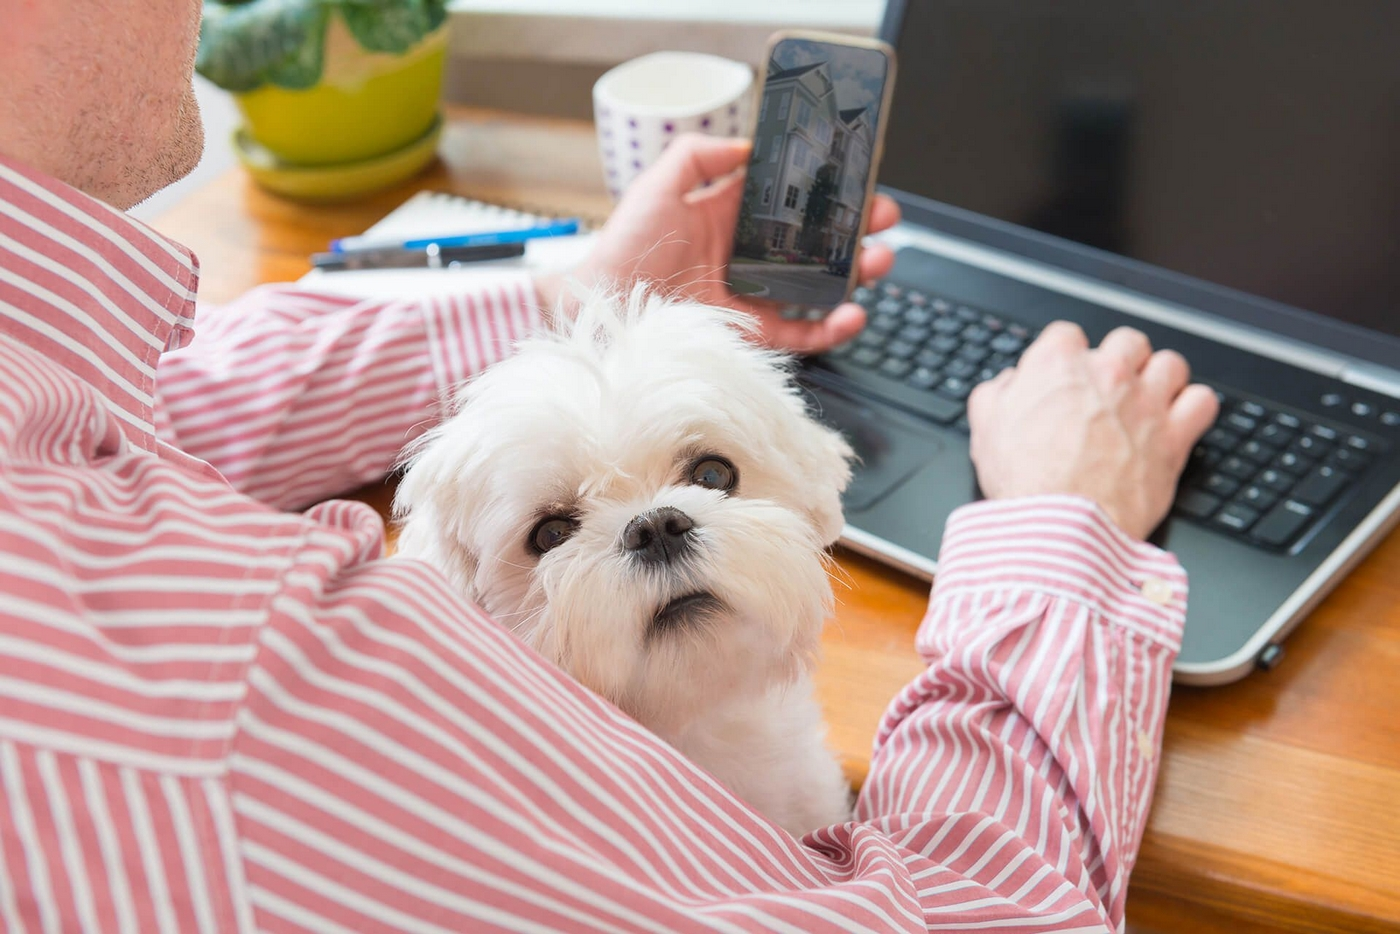 Image of a man on his laptop with a small dog in his lap